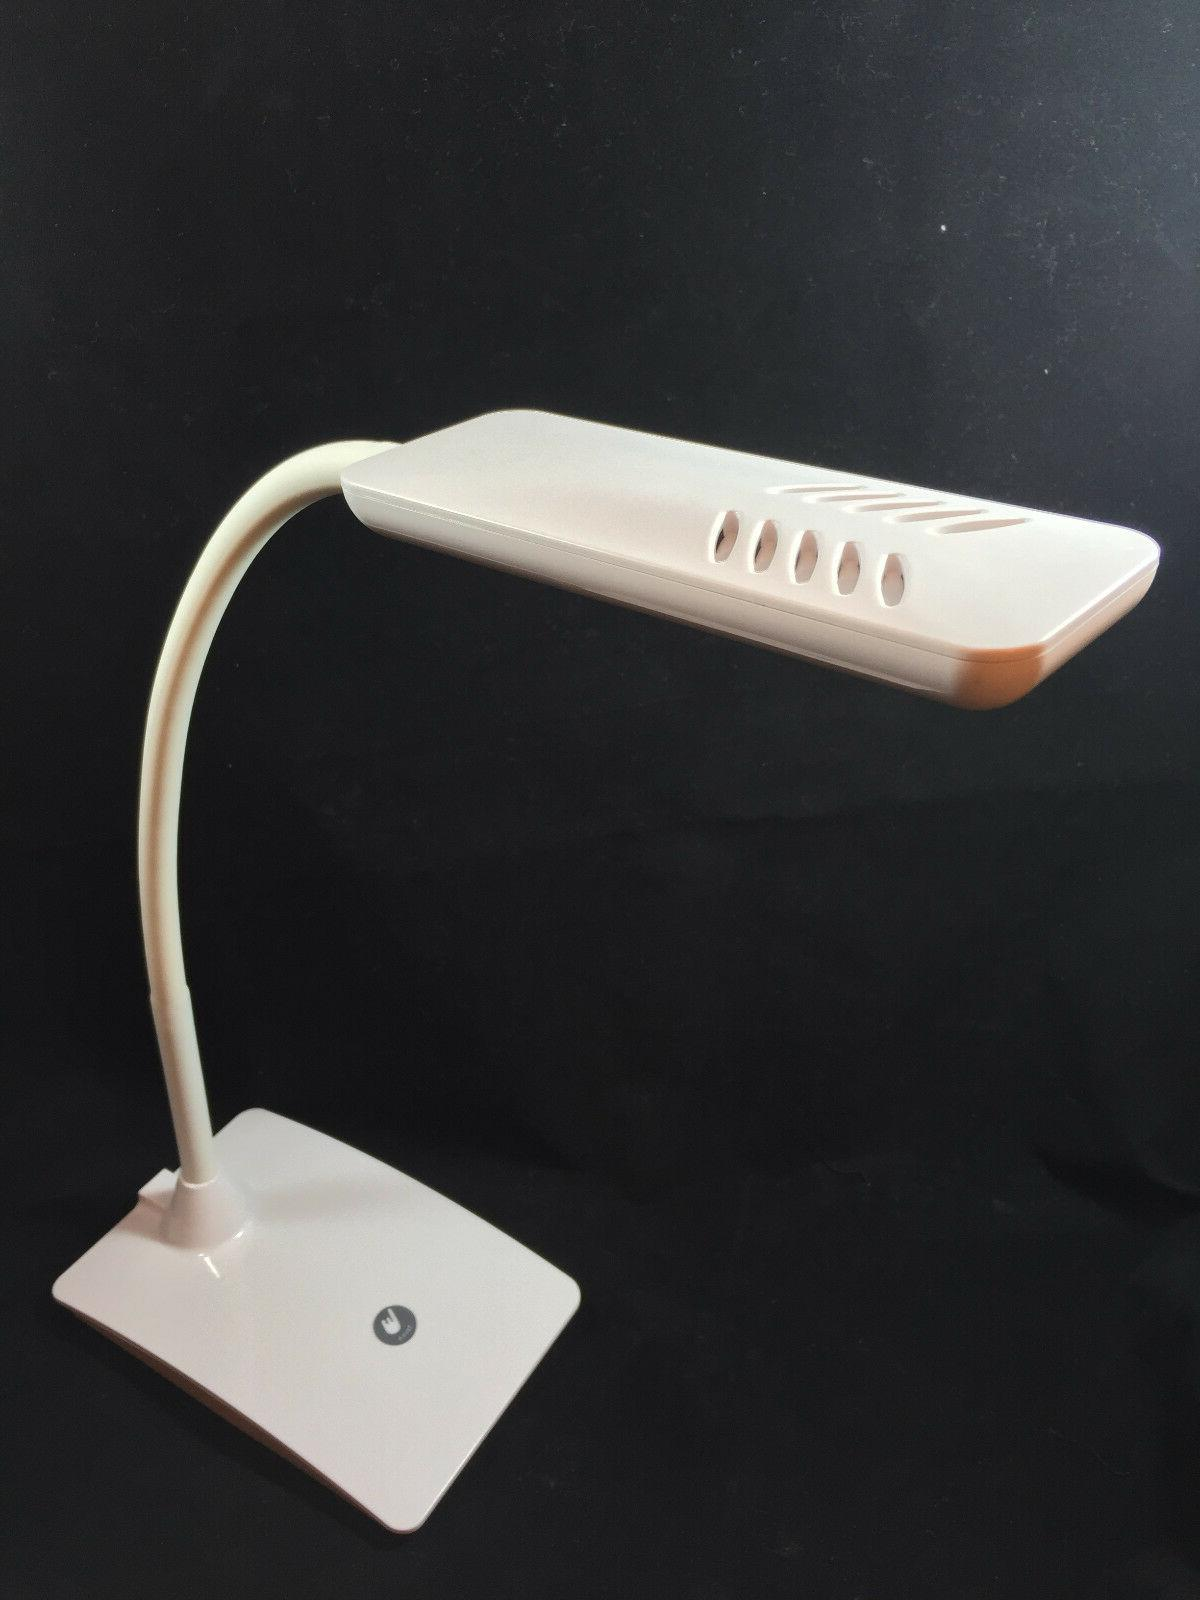 7W Dimmable Touch Adjustable LED Desk Lamp